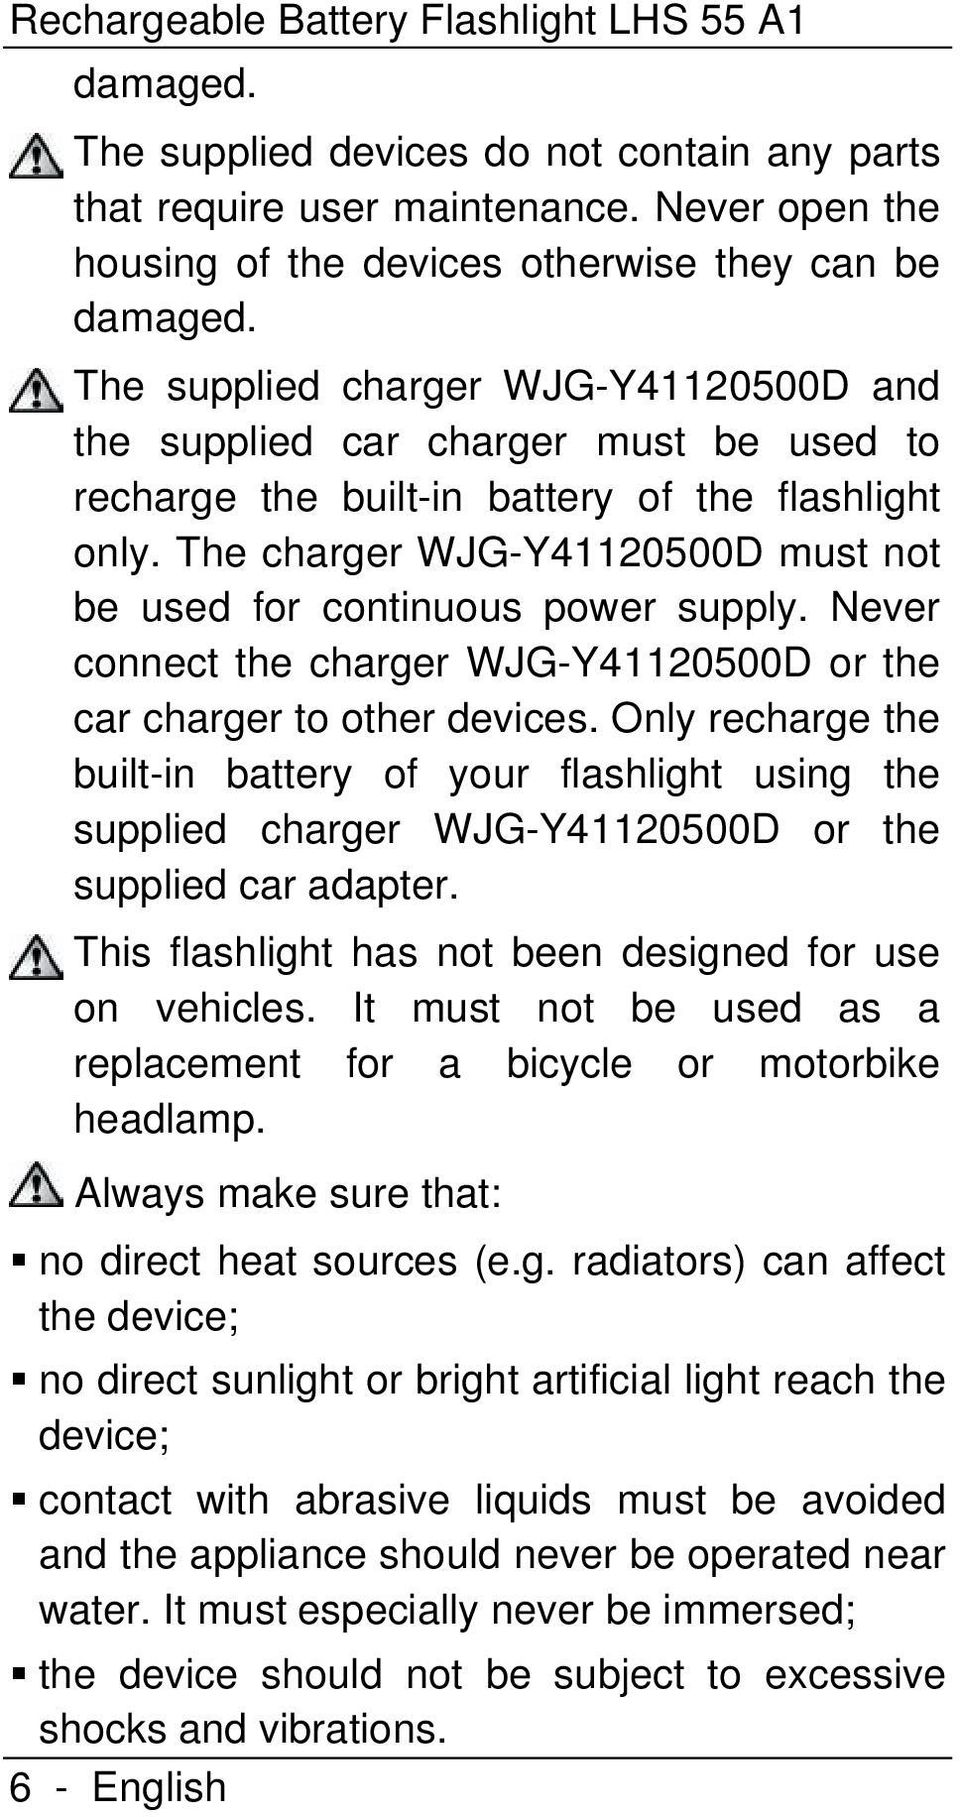 The charger WJG-Y41120500D must not be used for continuous power supply. Never connect the charger WJG-Y41120500D or the car charger to other devices.